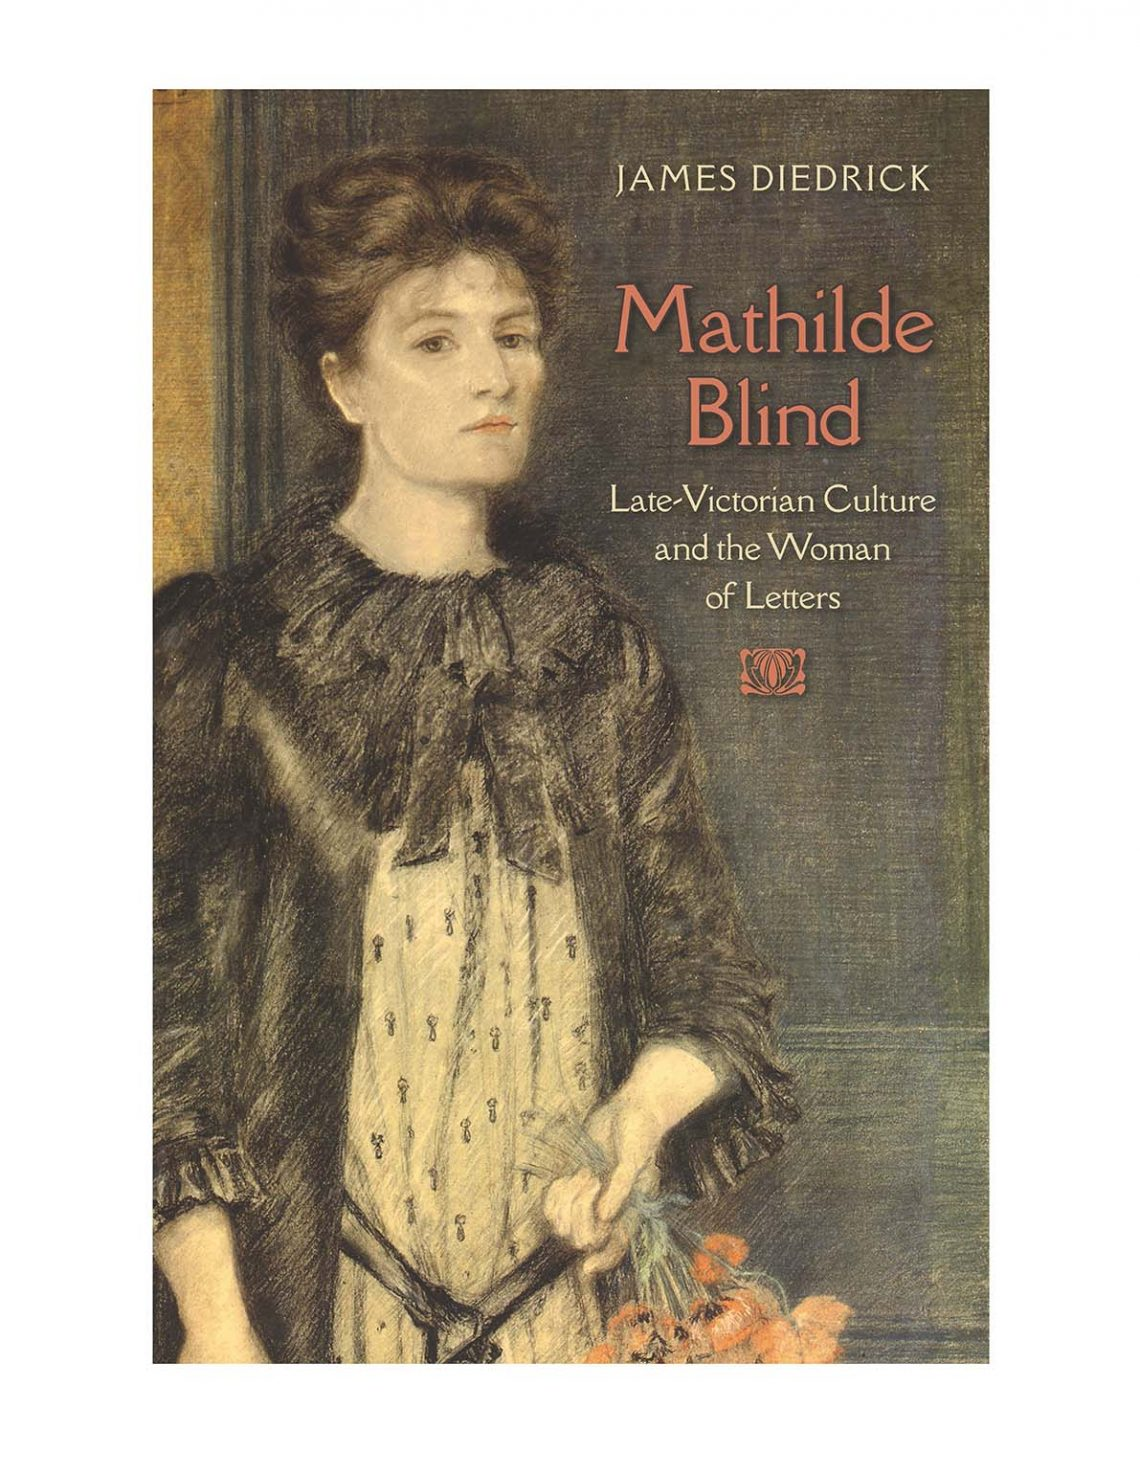 Susan David Bernstein reviews Mathilde Blind: Late-Victorian Culture and the Woman of Letters